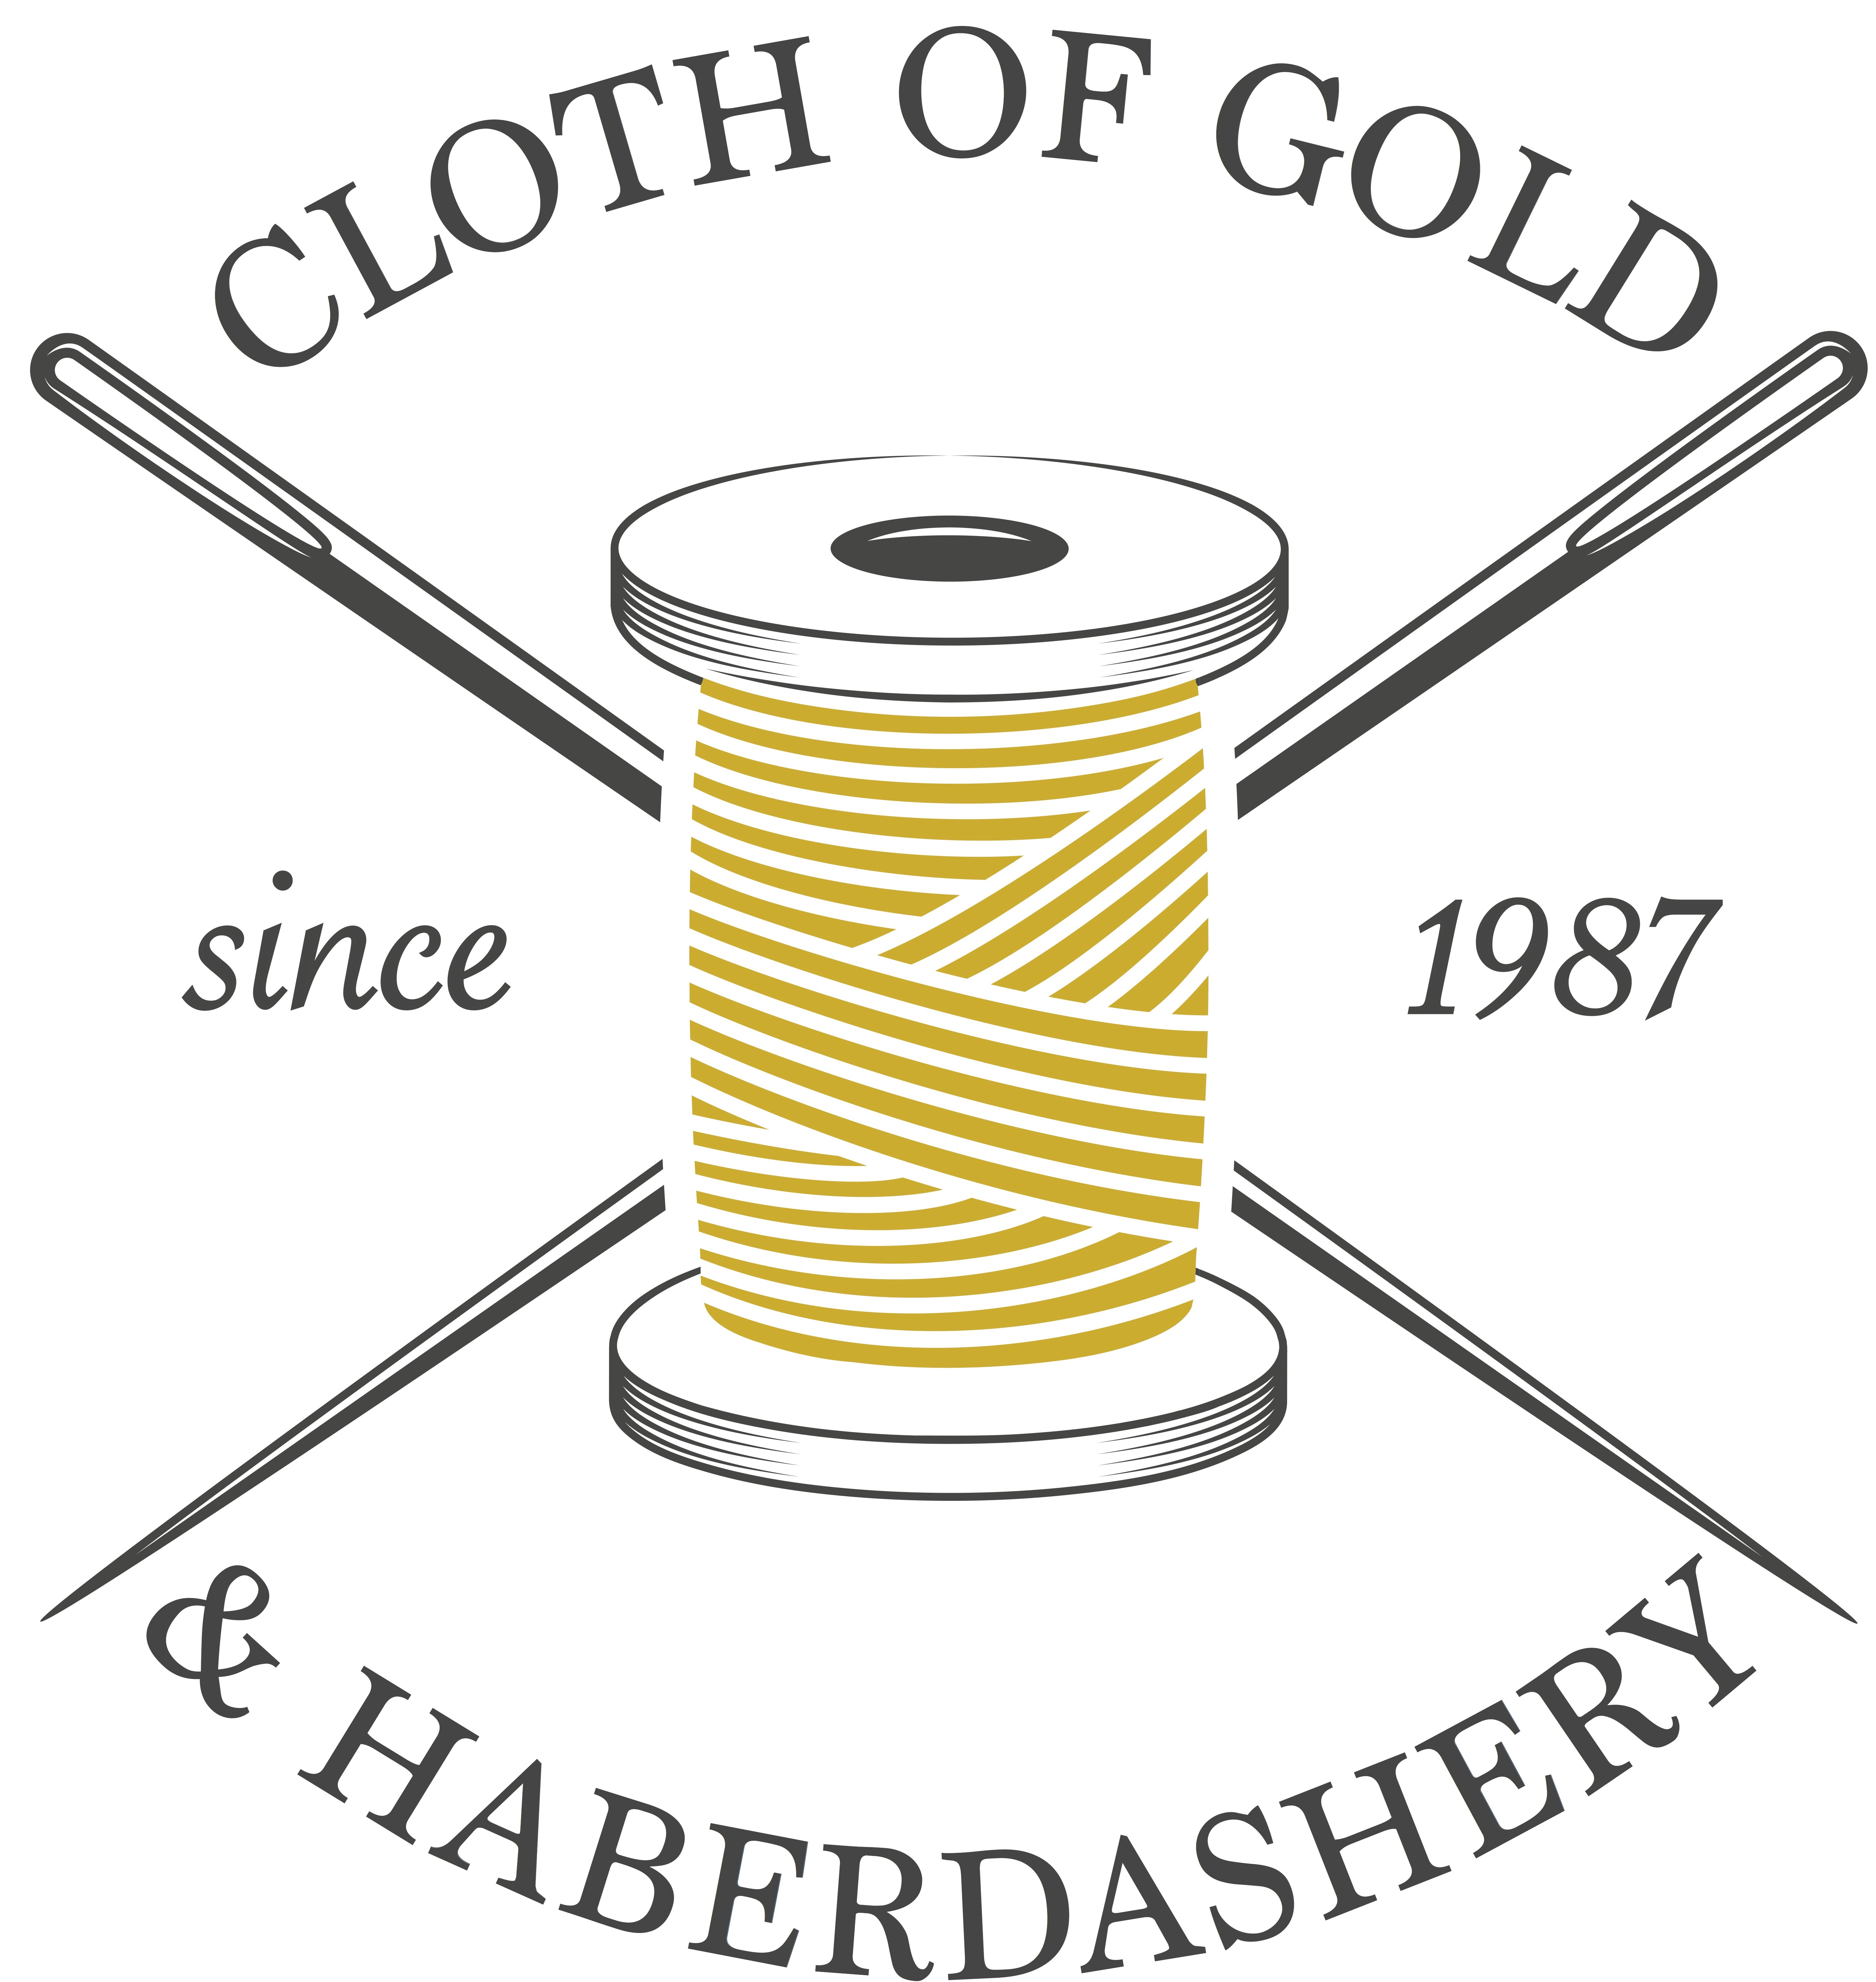 Cloth of Gold & Haberdashery Ltd logo